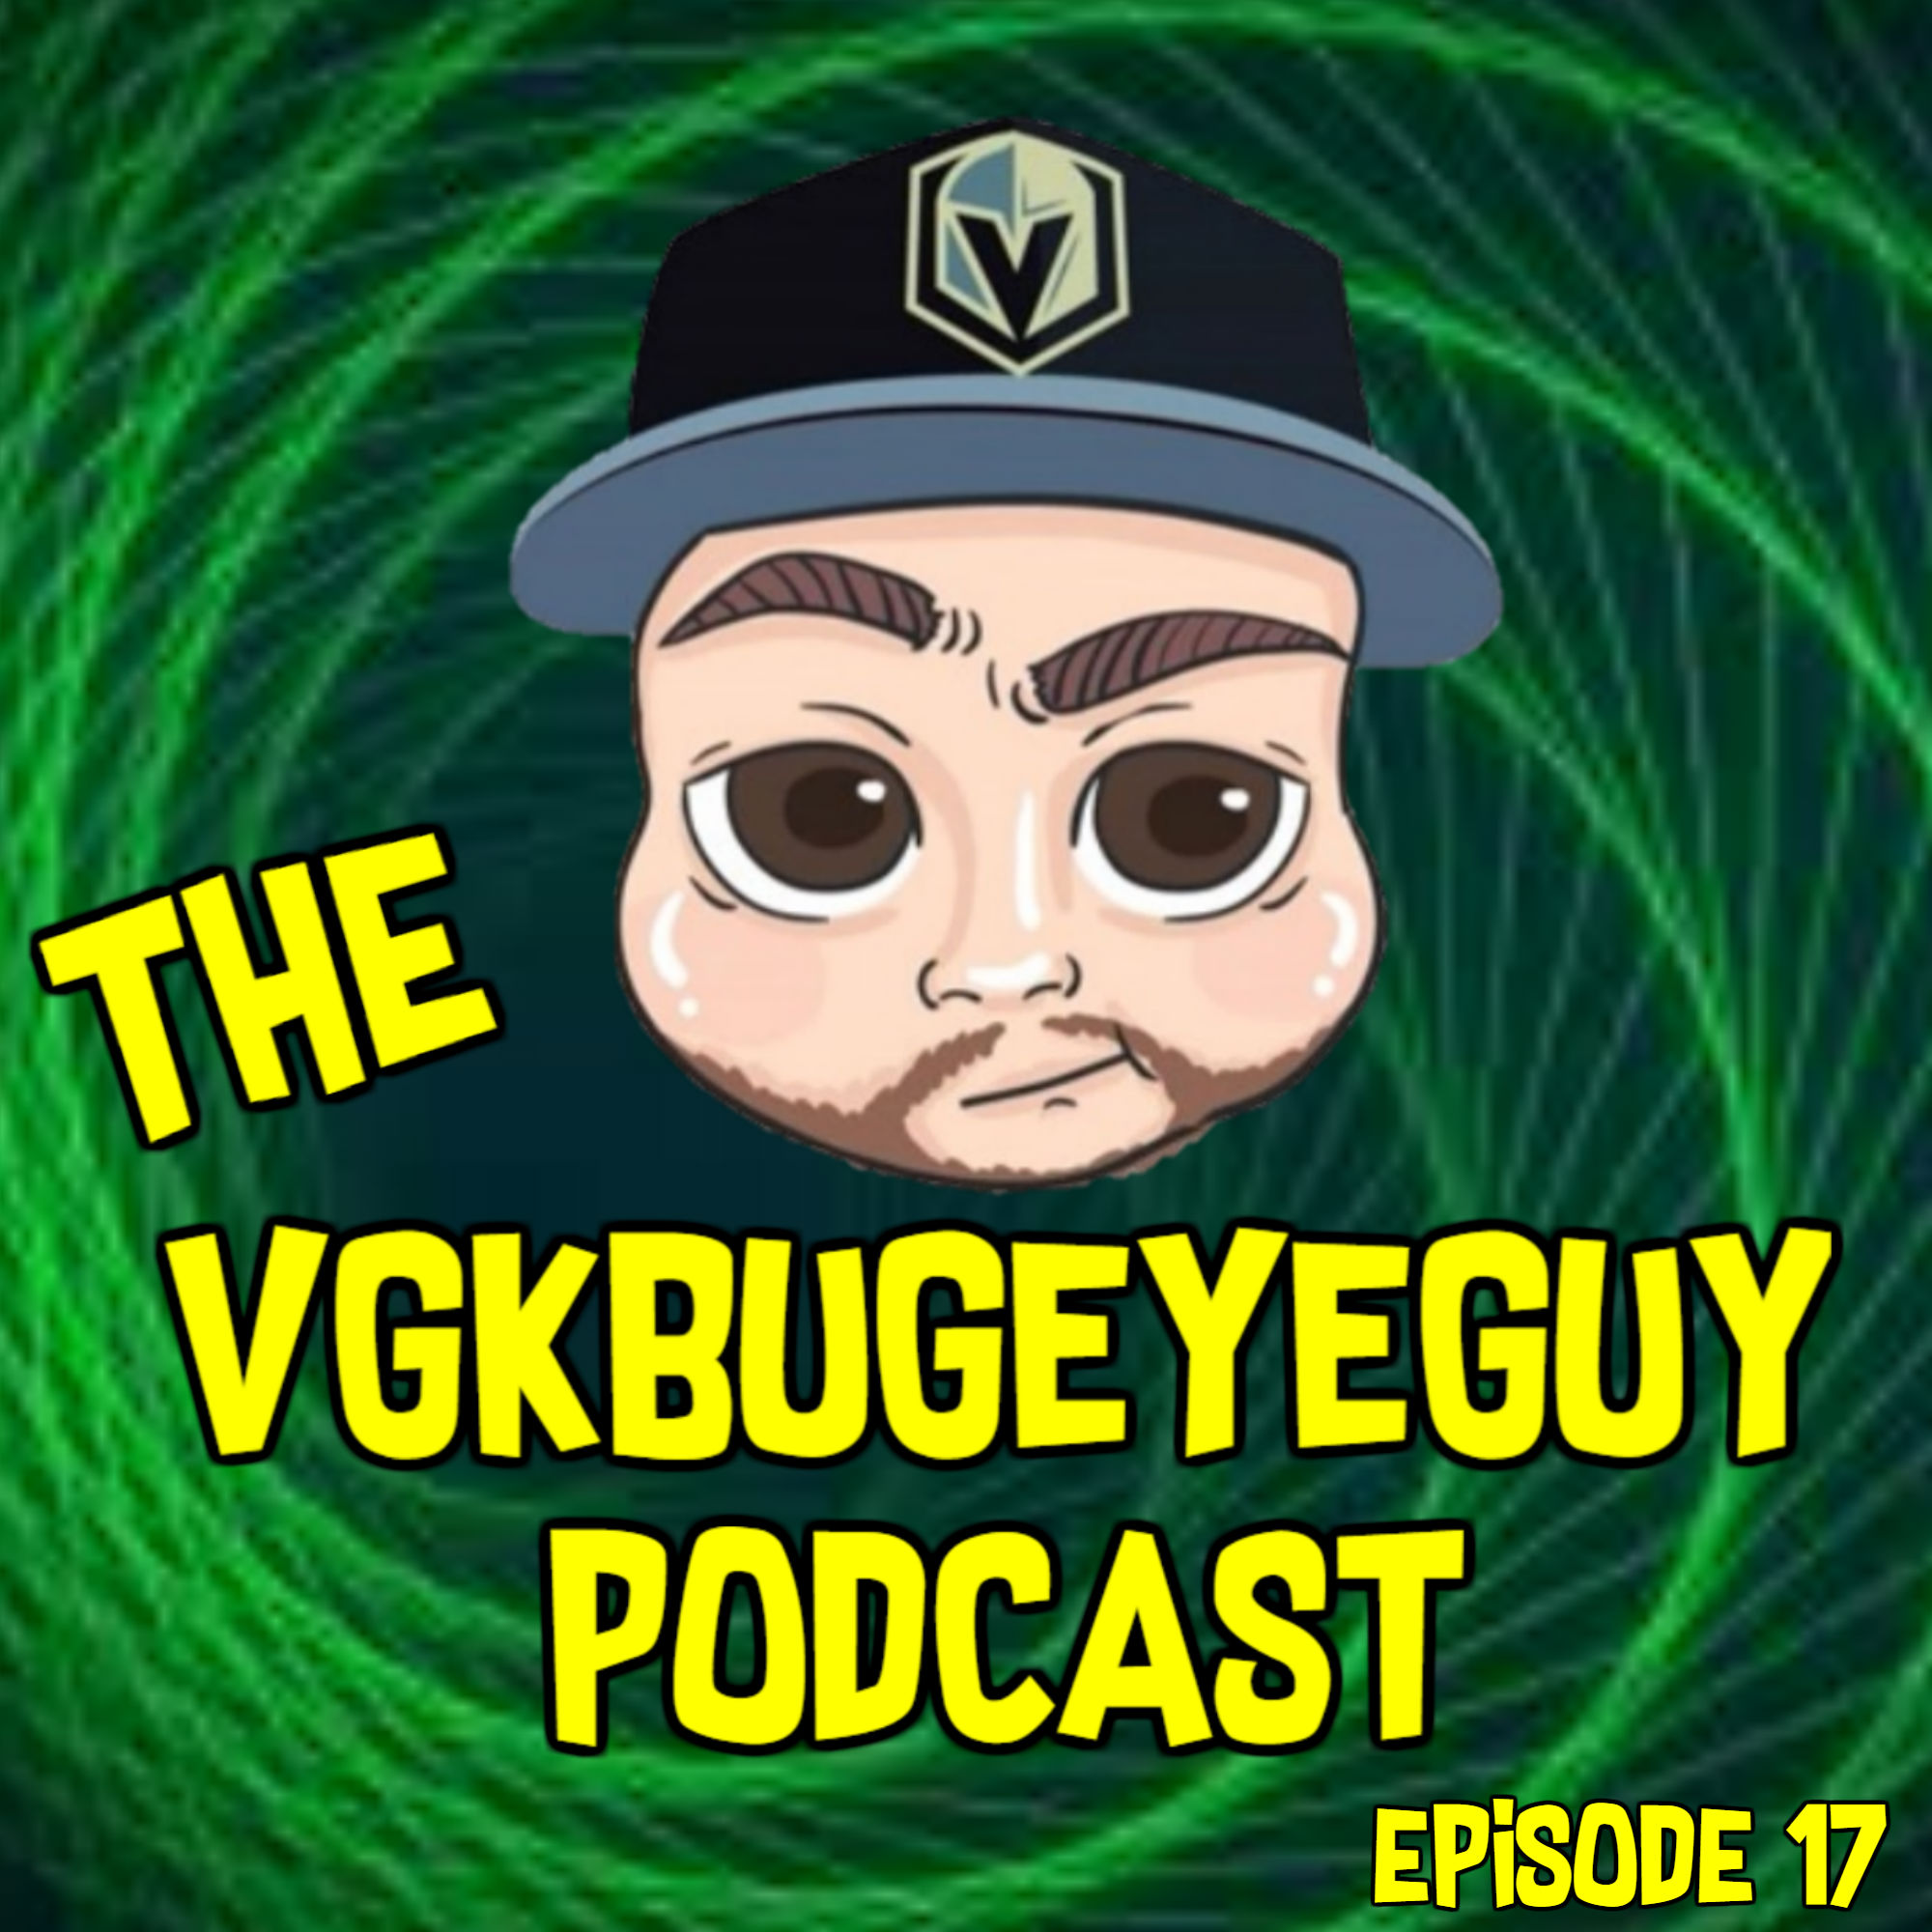 The VGKbugeyeGuy Podcast Episode 17